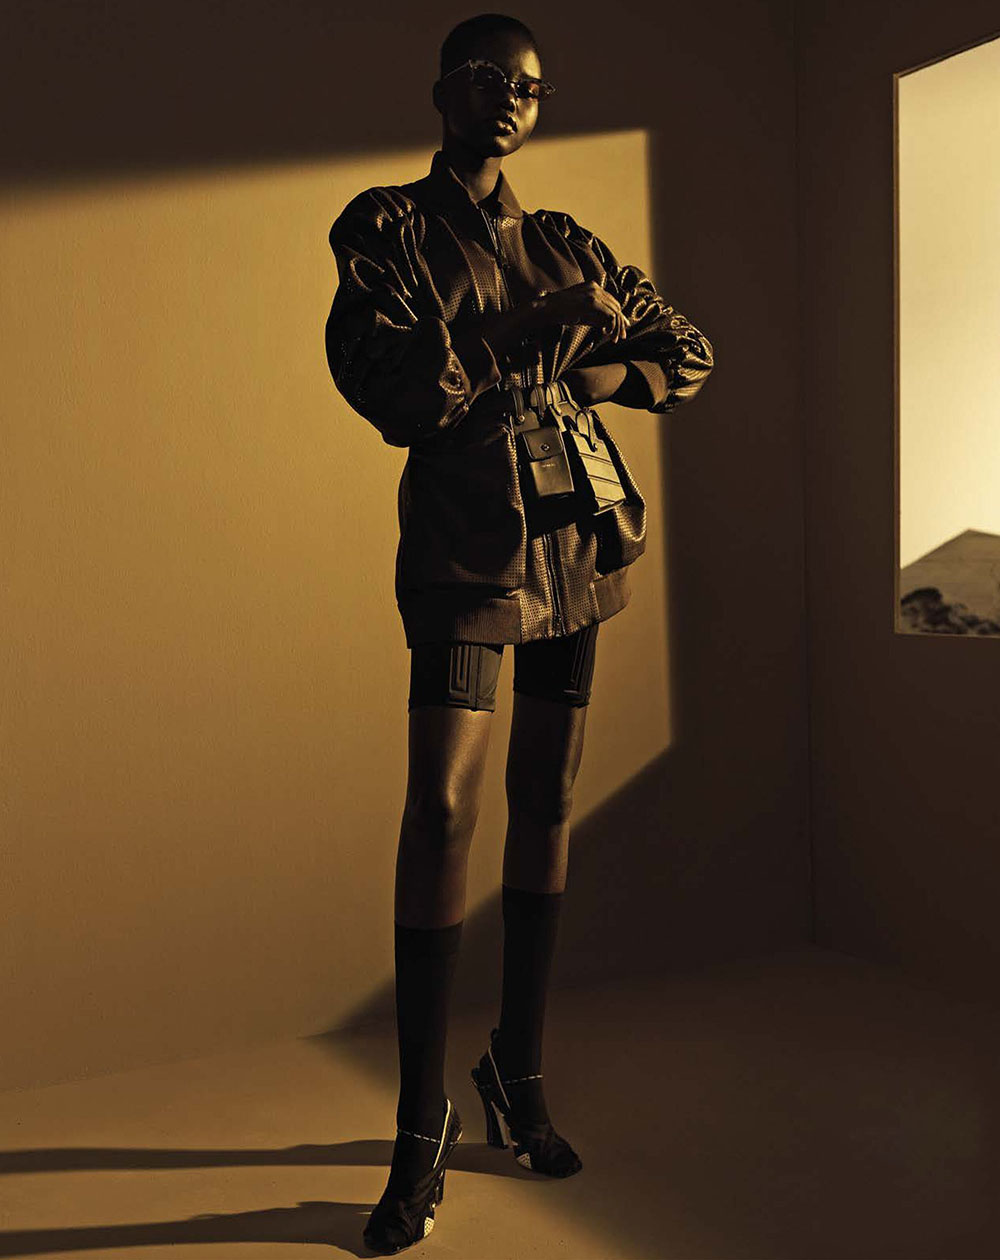 Adut-Akech-by-Josh-Olins-for-Vogue-Italia-April-2019-8.jpg